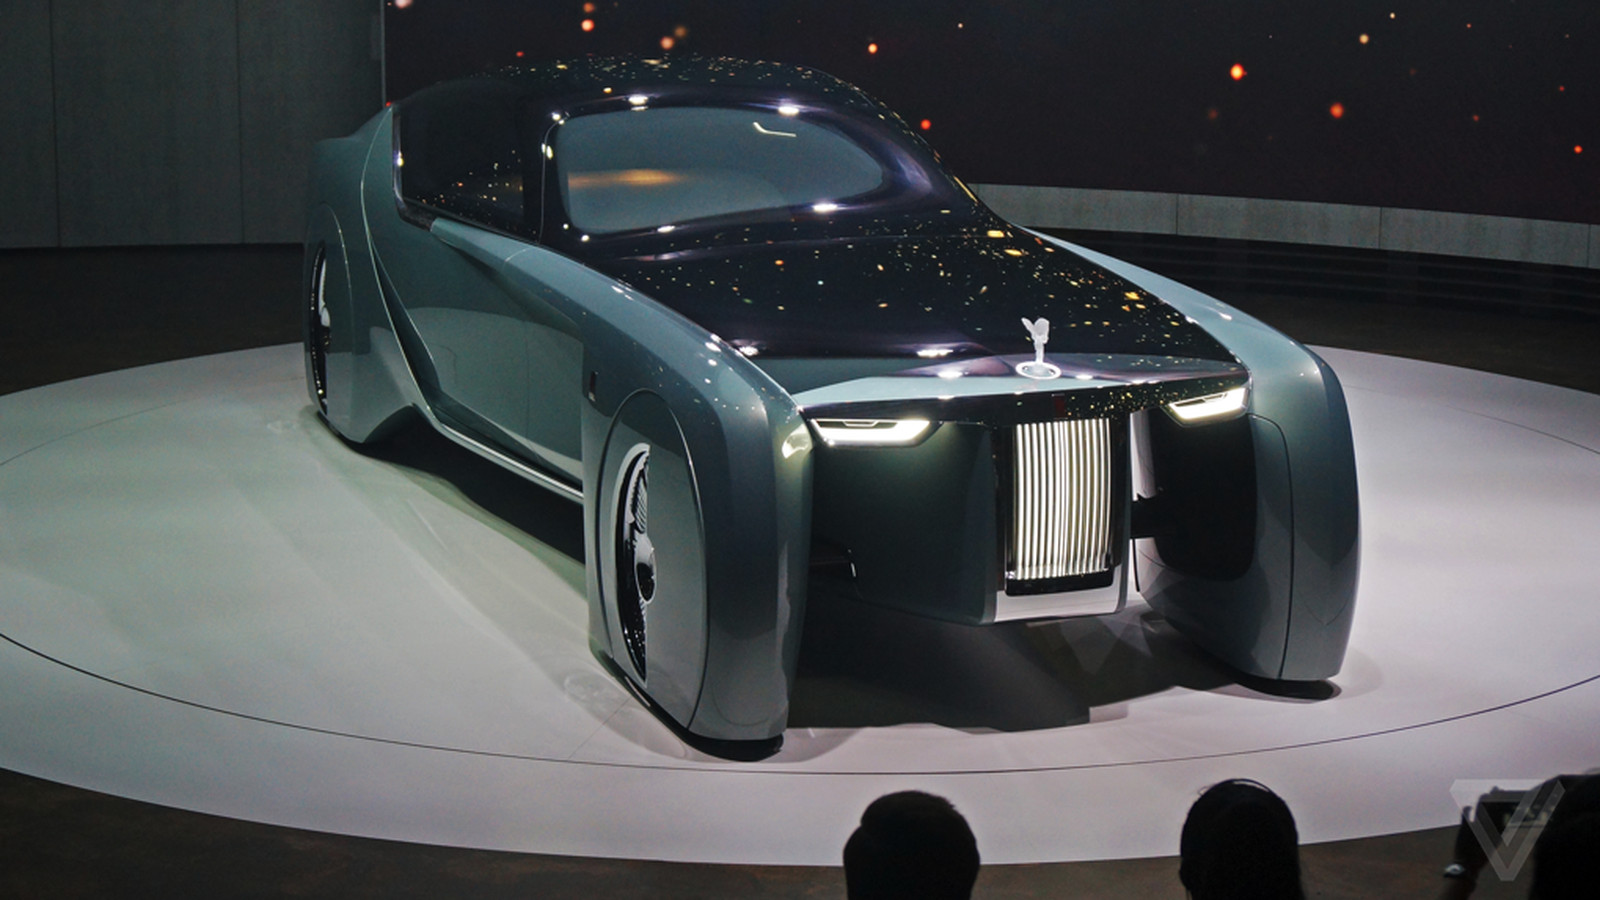 Get Inside Rolls Royces Unbelievable Vision 100 Concept Car In 360